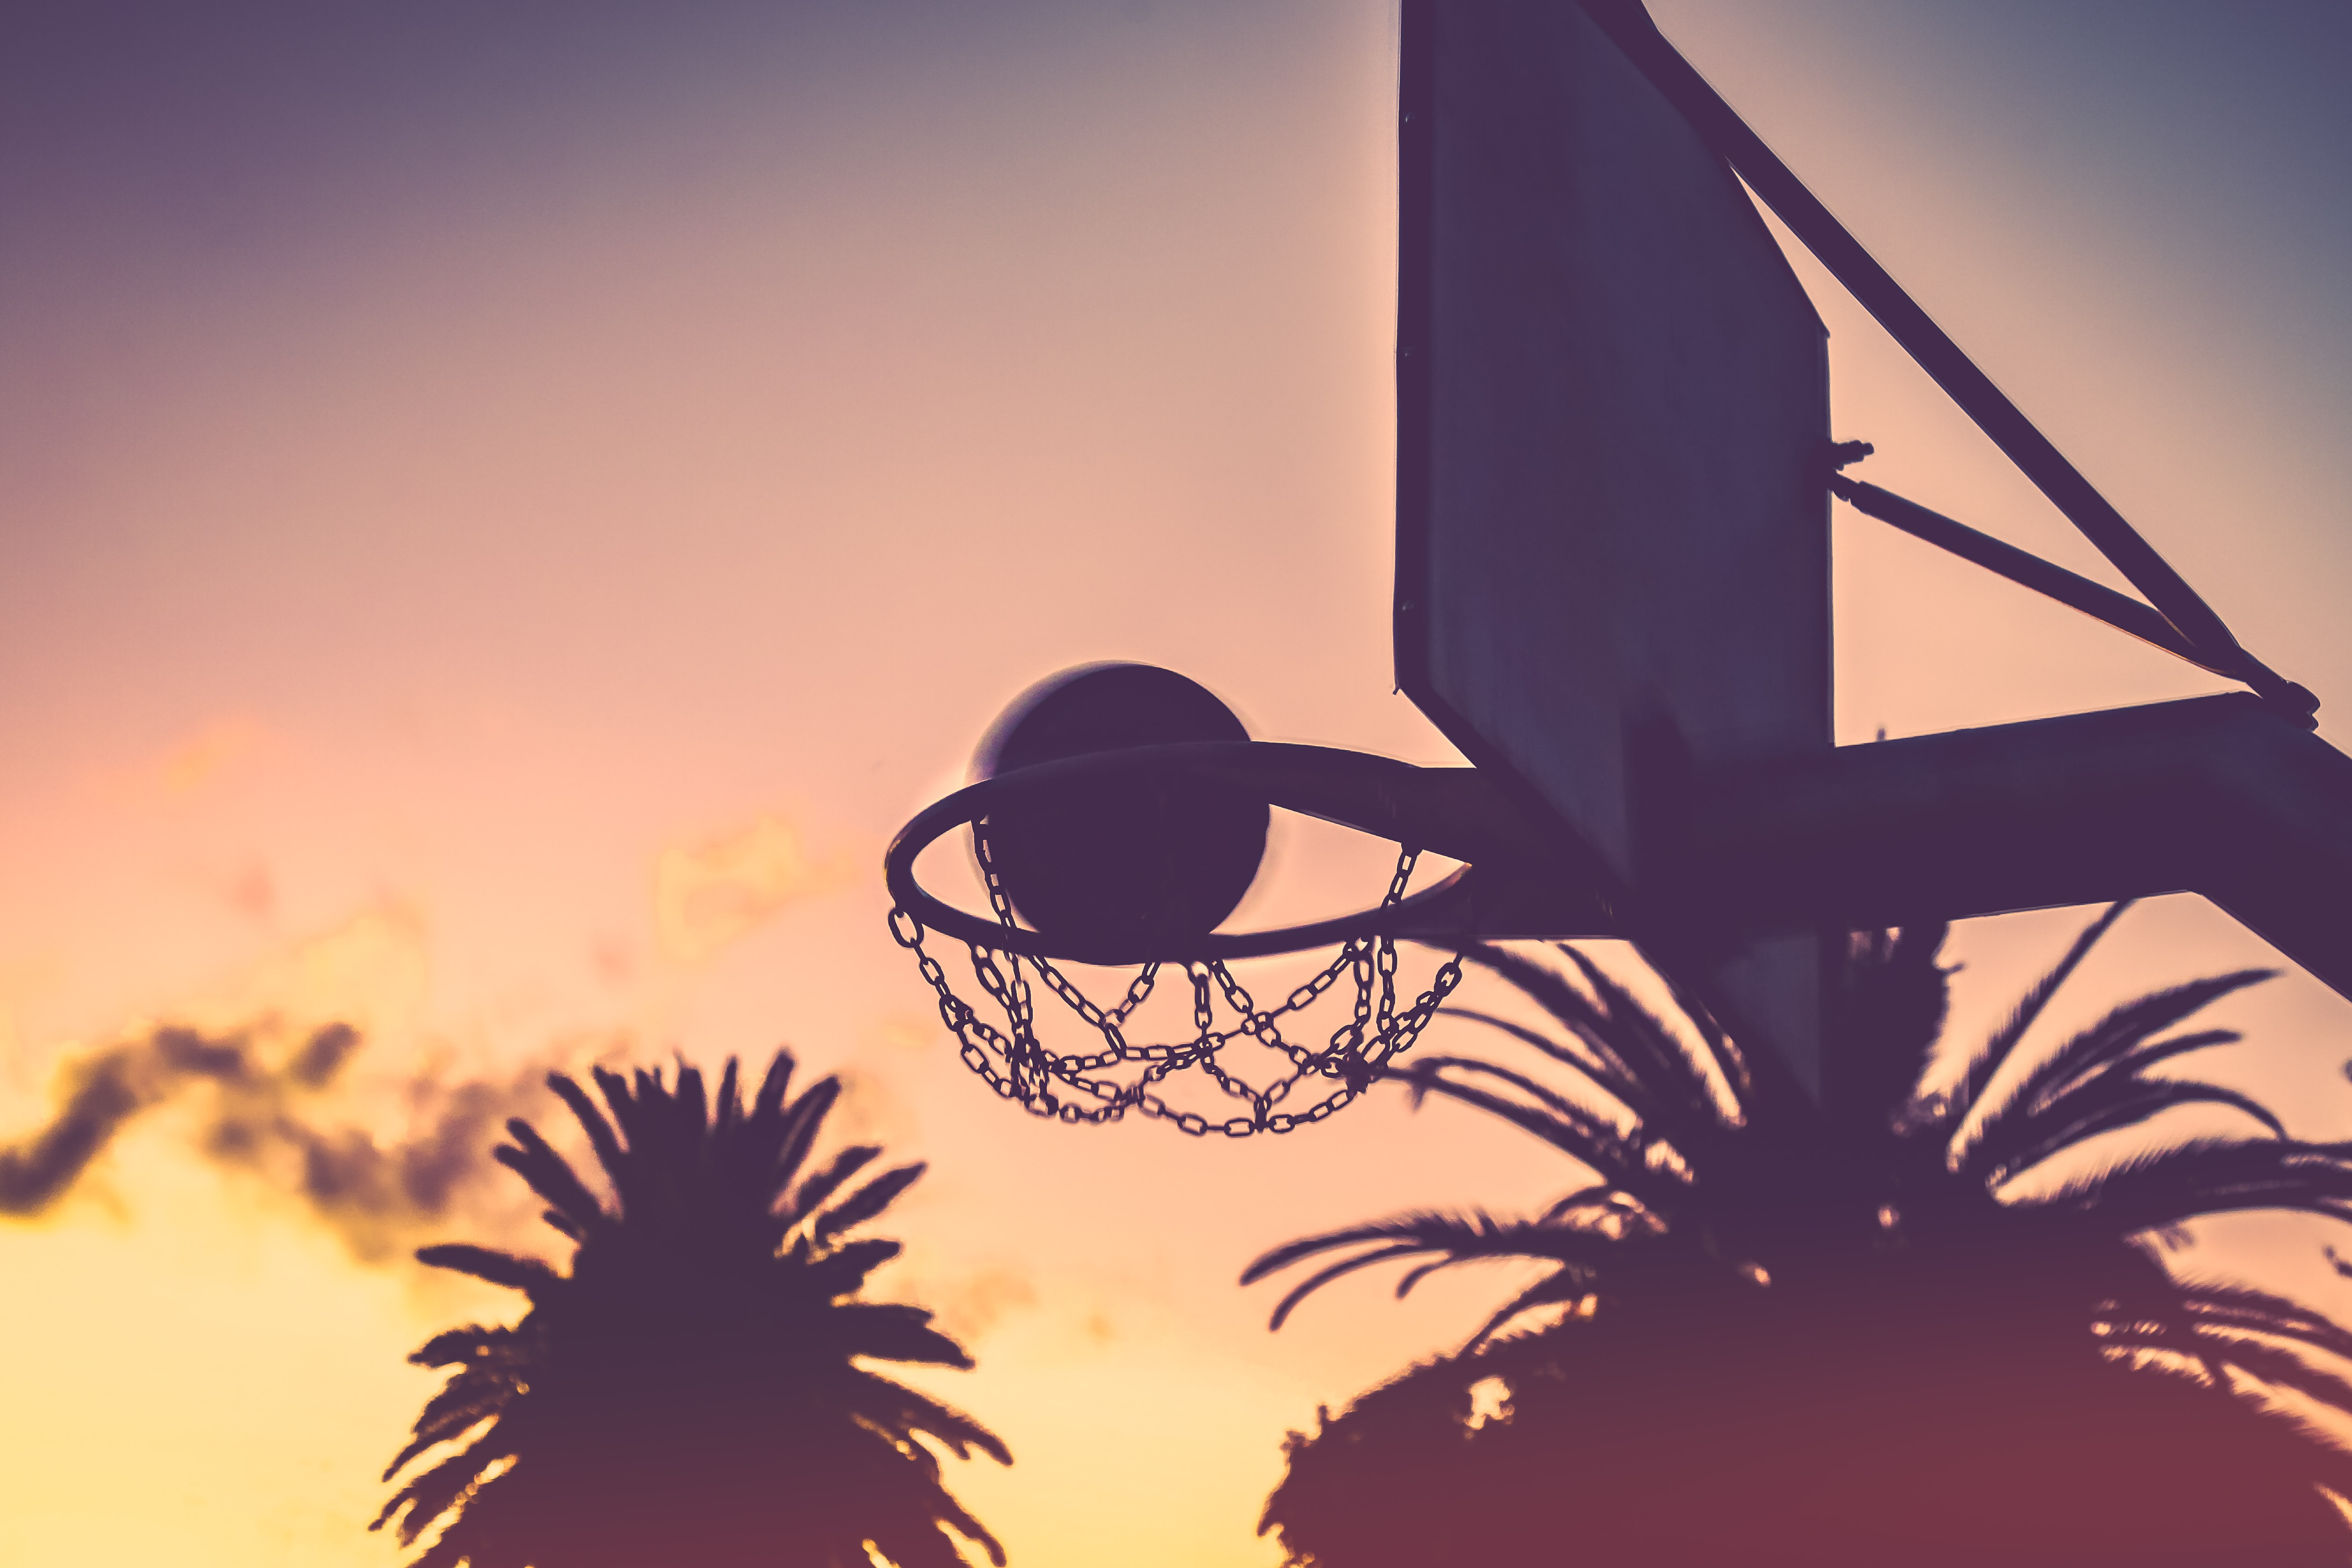 silhouette of basketball hoop and basketball during orange sunet